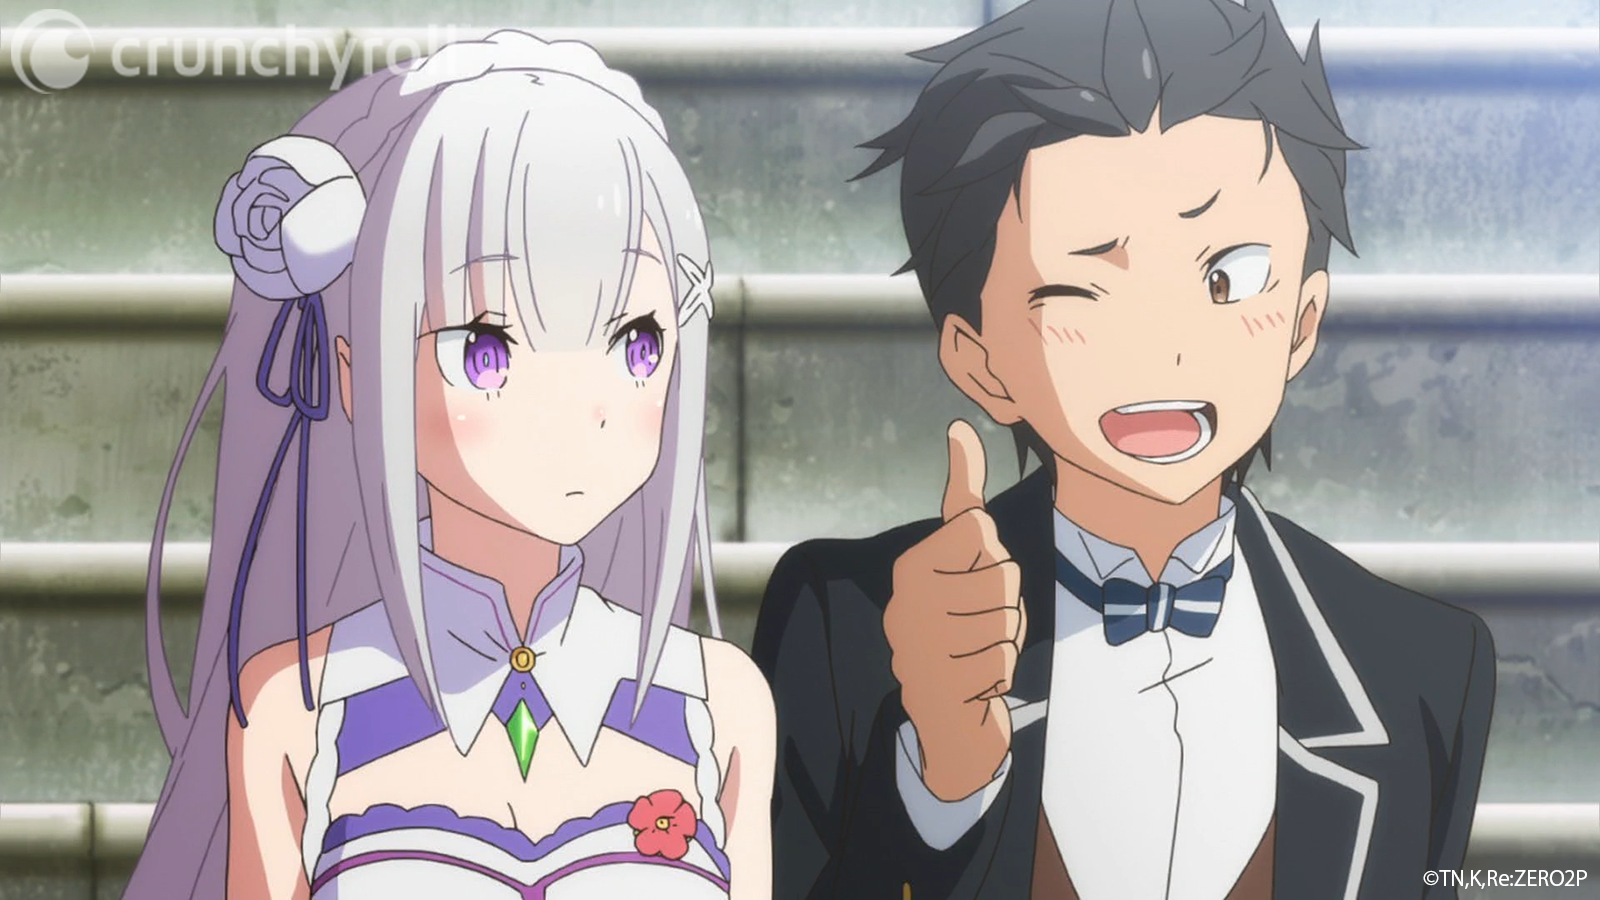 Subaru flashes Emilia an enthusiastic thumb's up in a scene from the Re:ZERO -Starting Life in Another World- TV anime.